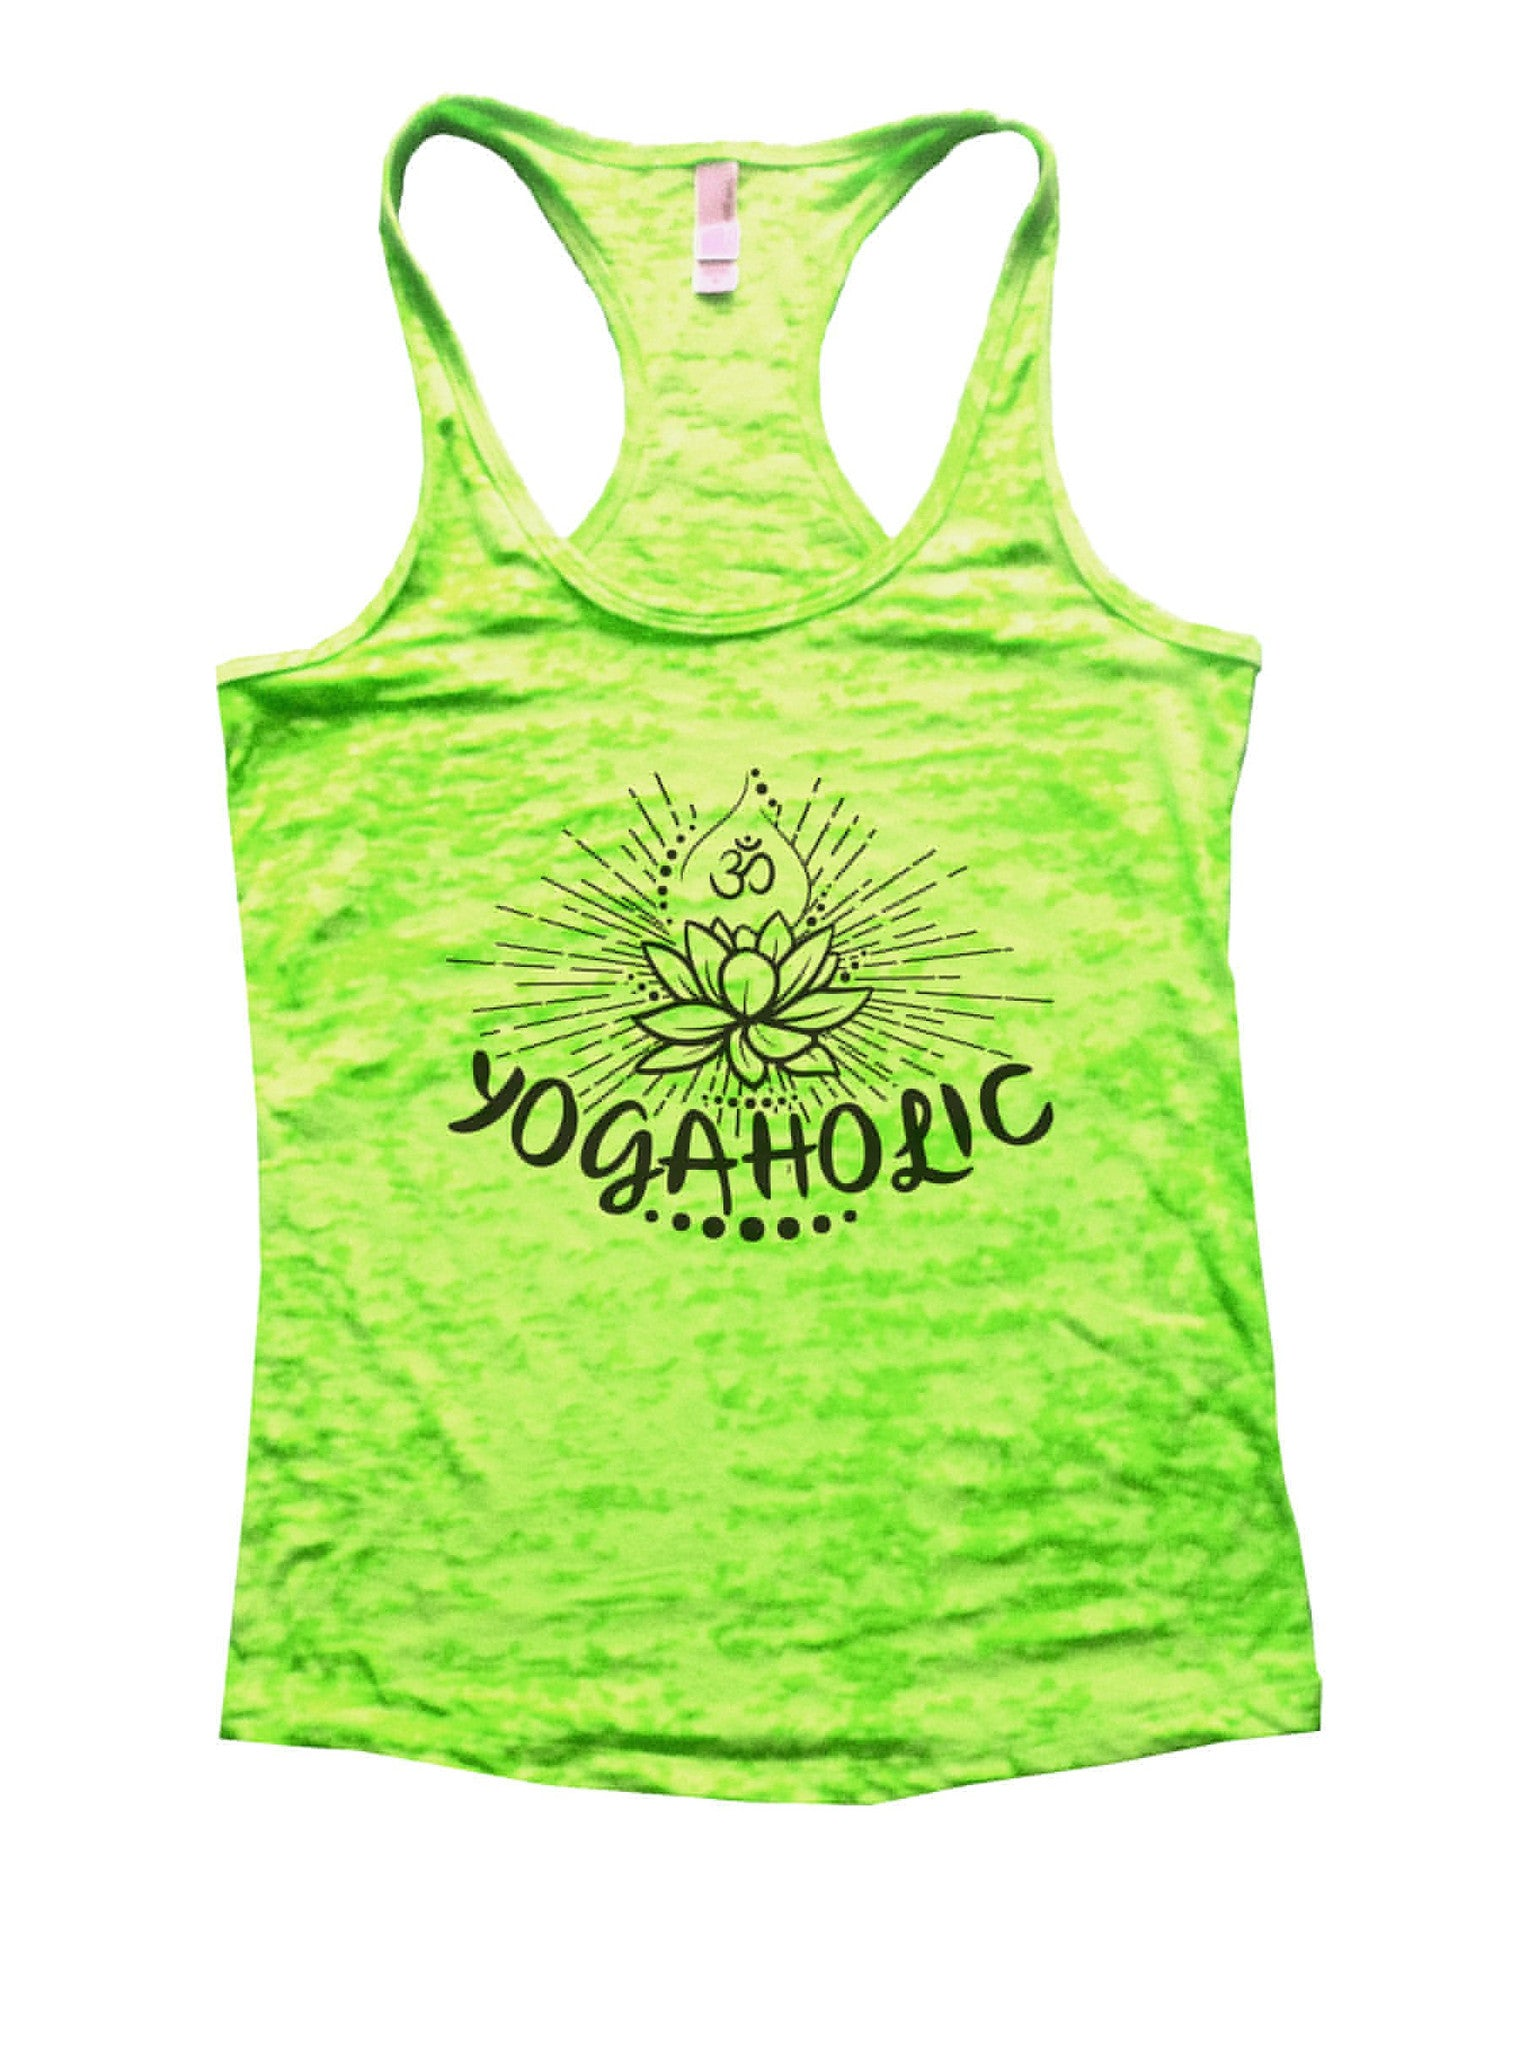 Yogaholic Burnout Tank Top By BurnoutTankTops.com - 1017 - Funny Shirts Tank Tops Burnouts and Triblends  - 1